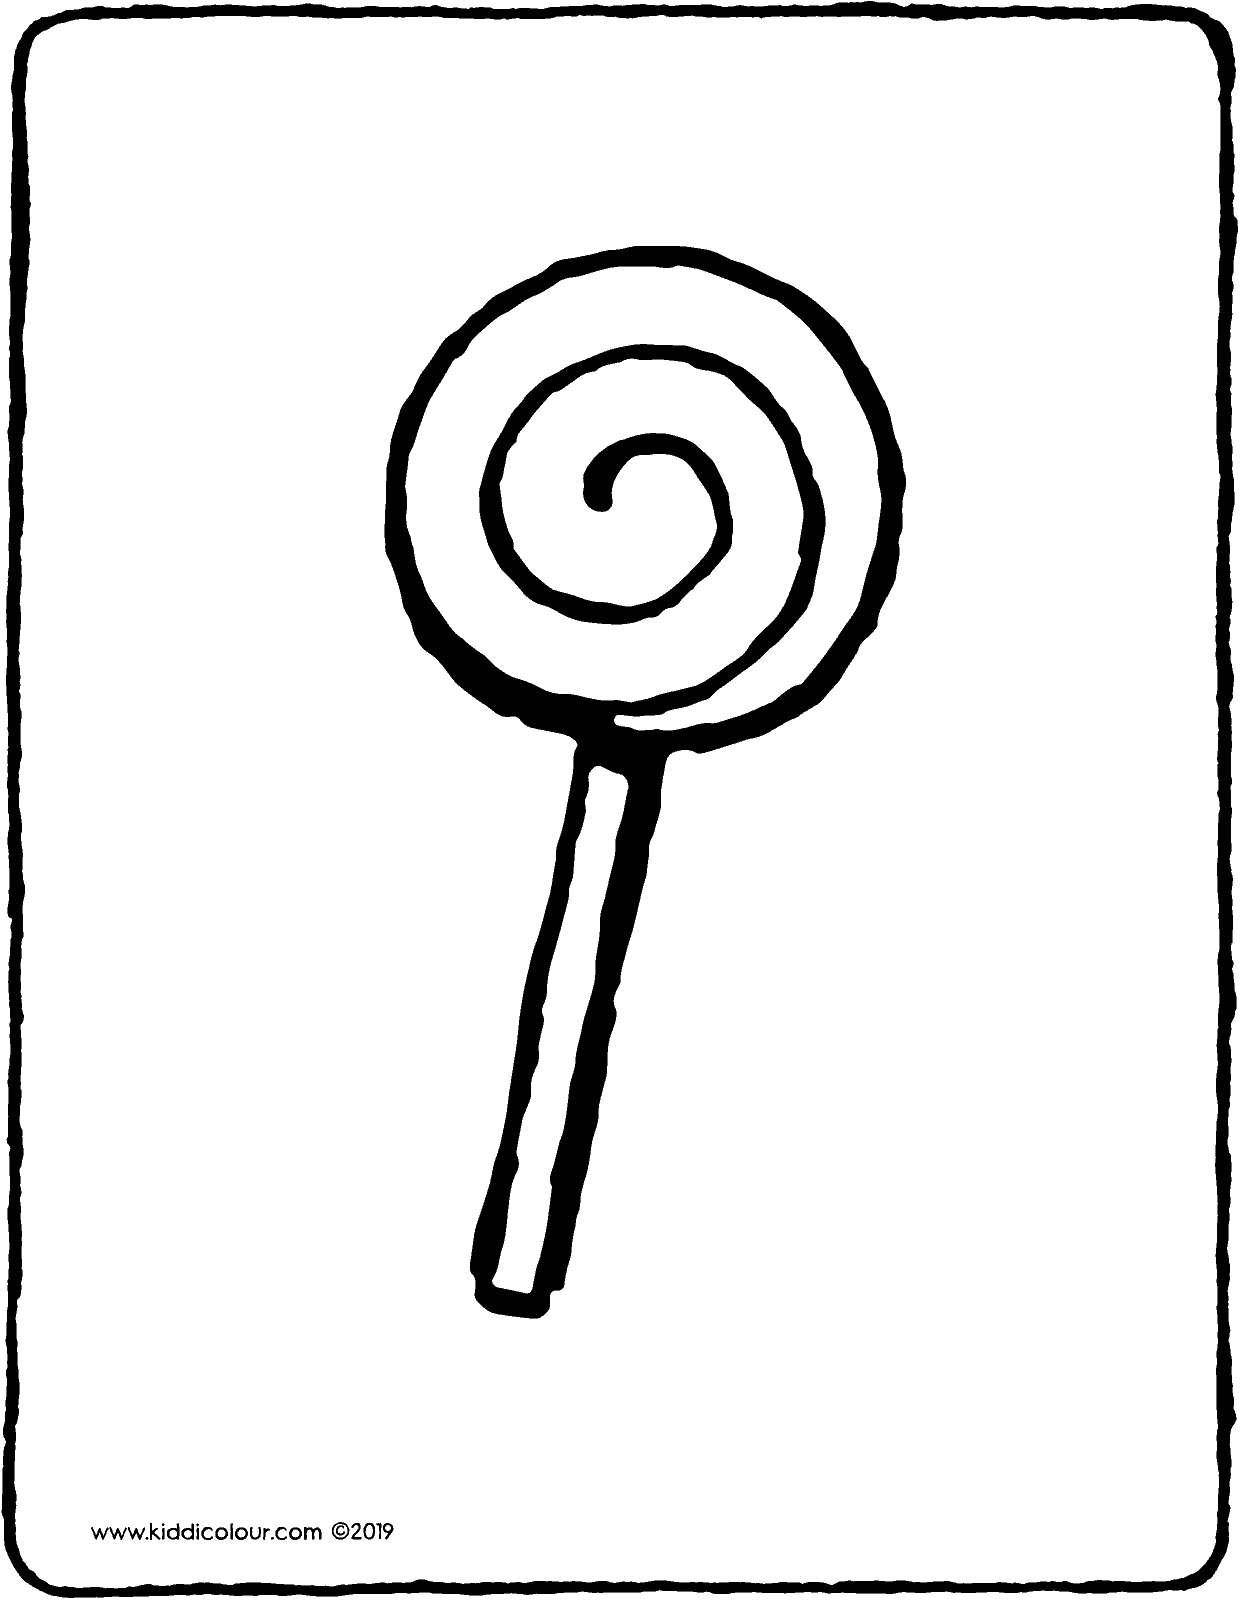 lolly colouring page drawing picture 01V